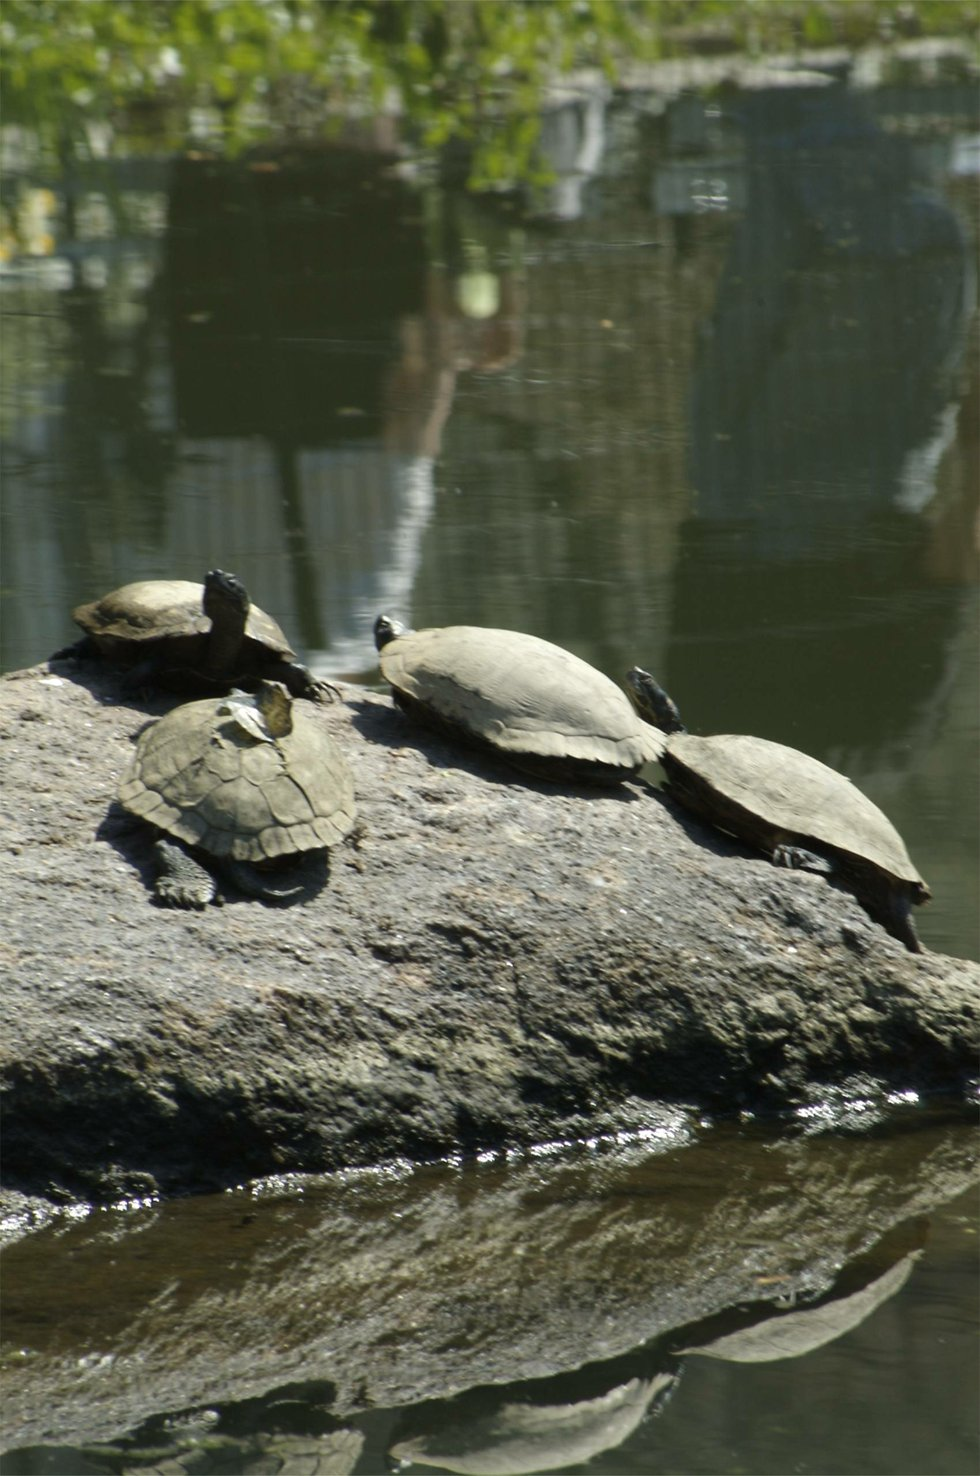 Turtles with Butterfly in the sun